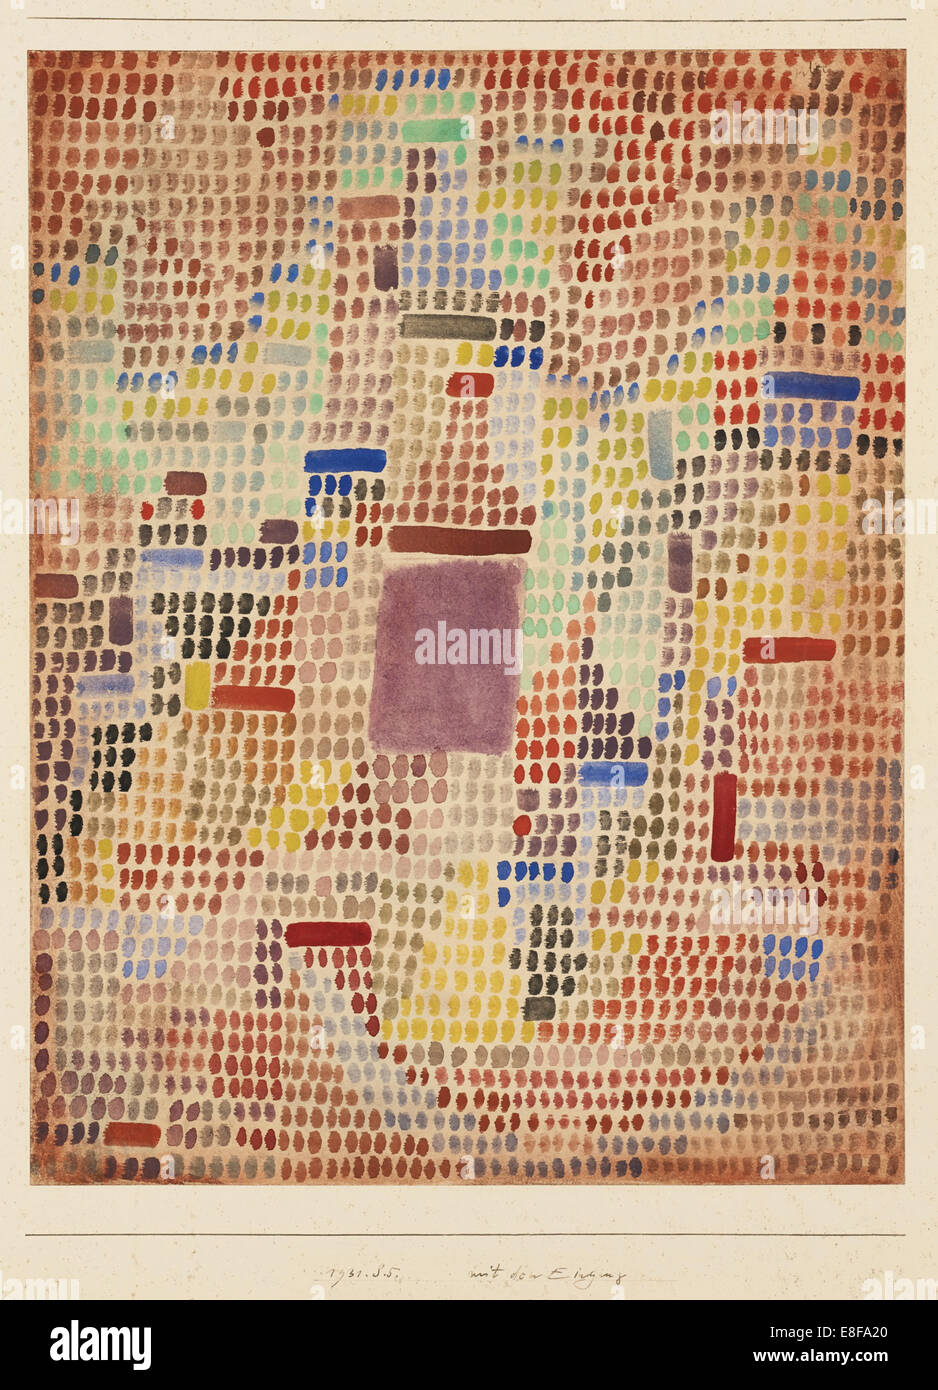 With the Entrance. Artist: Klee, Paul (1879-1940) - Stock Image